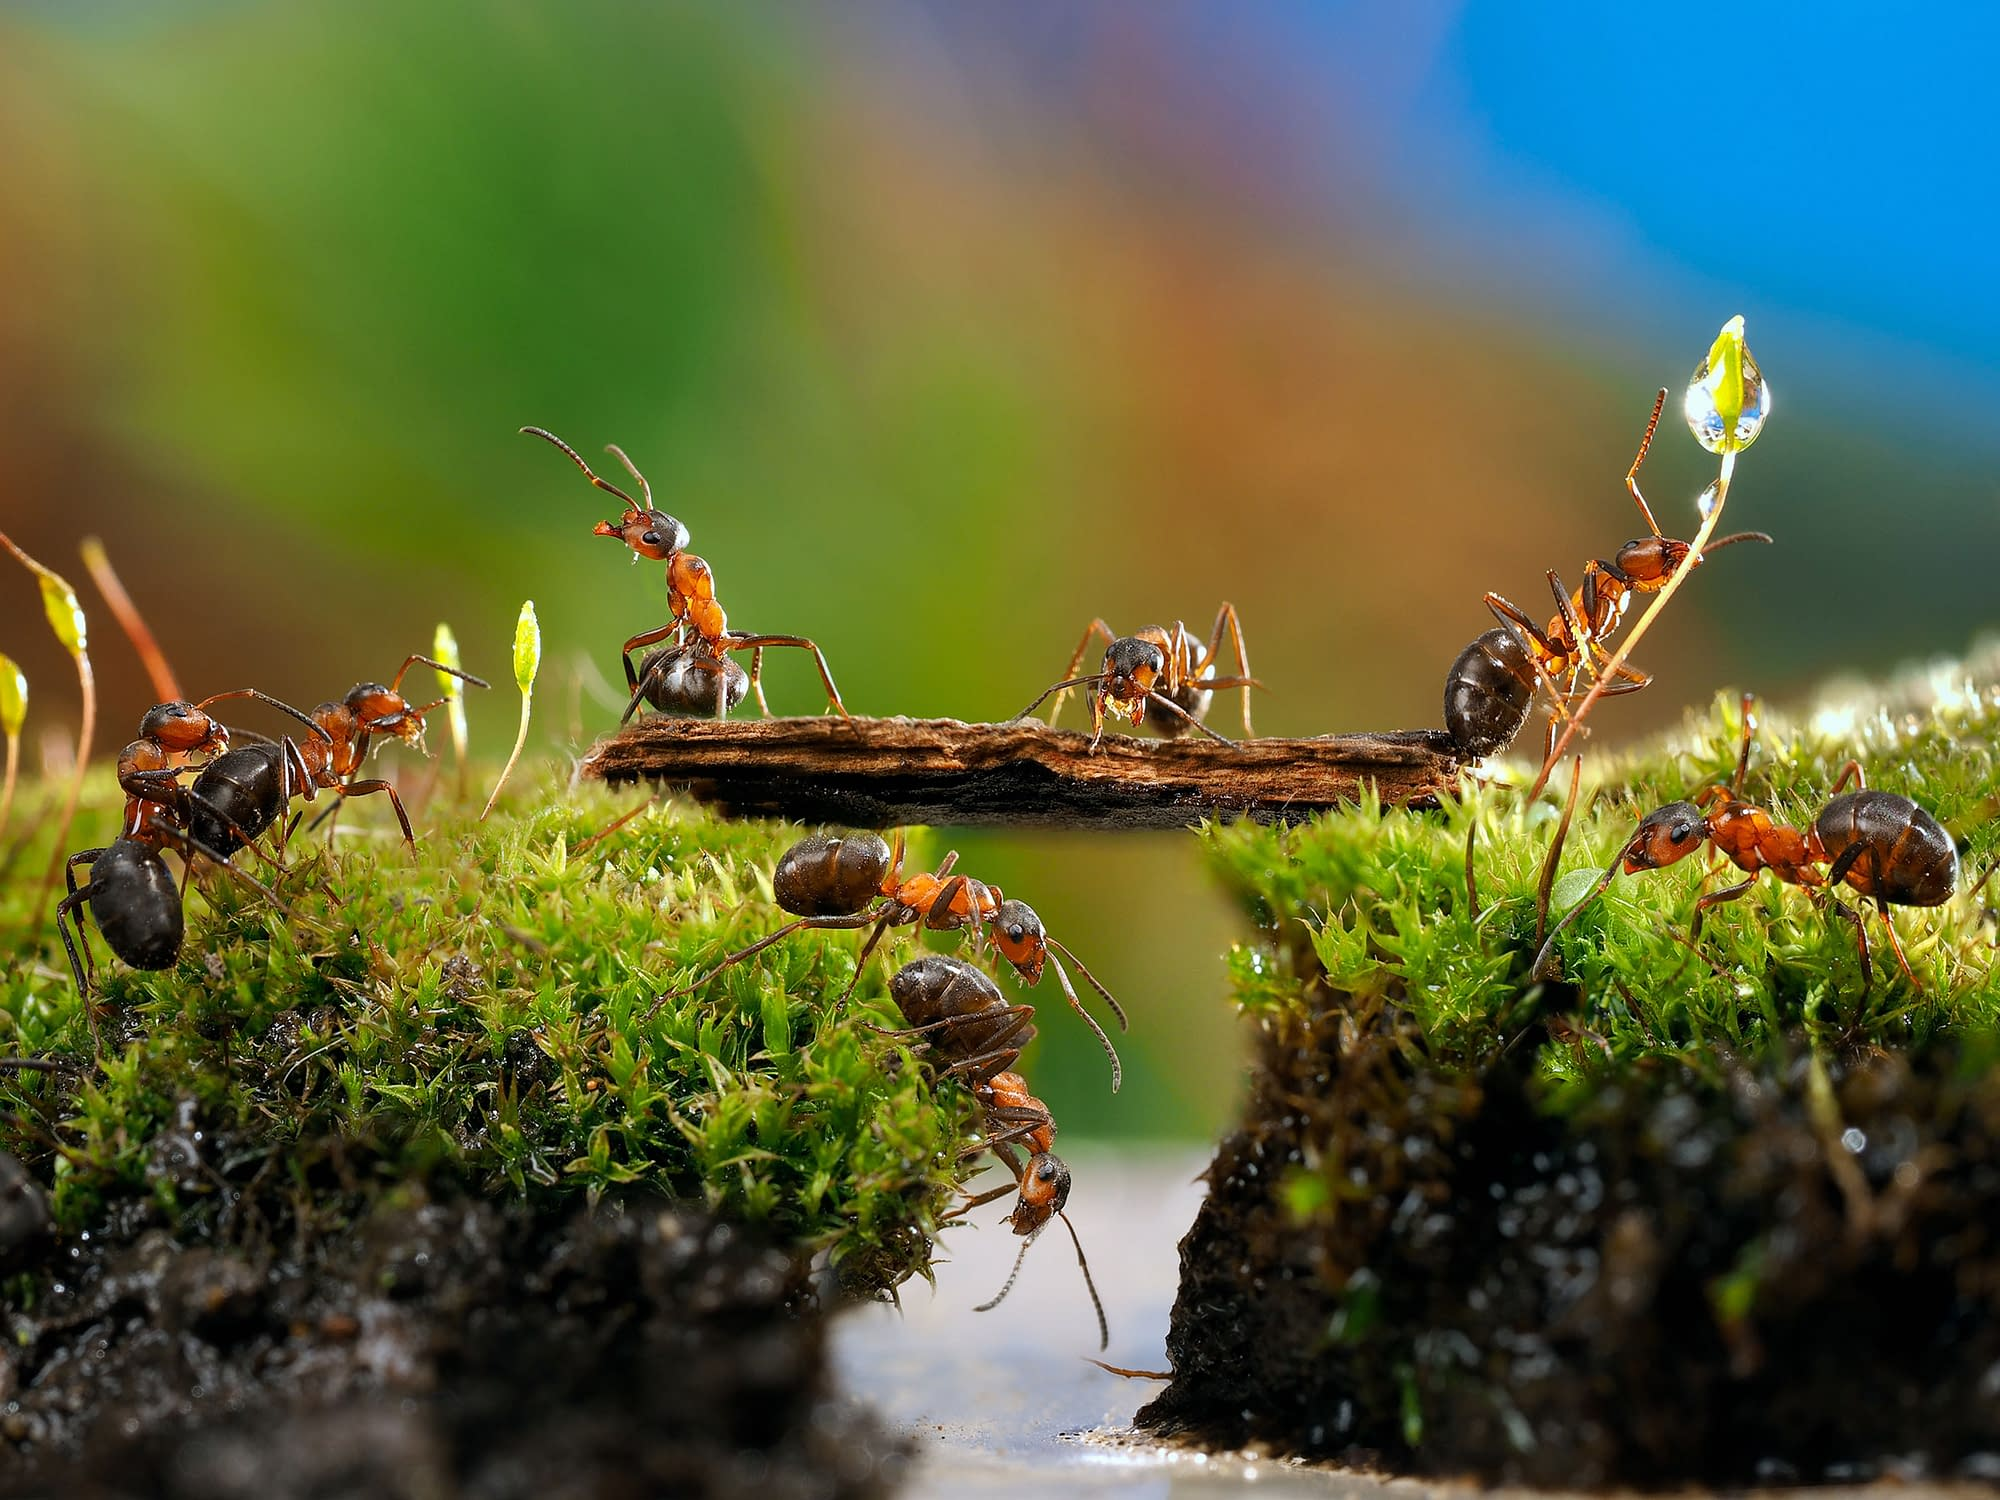 Ants. You might reconsider poisoning them. They can be your friend.